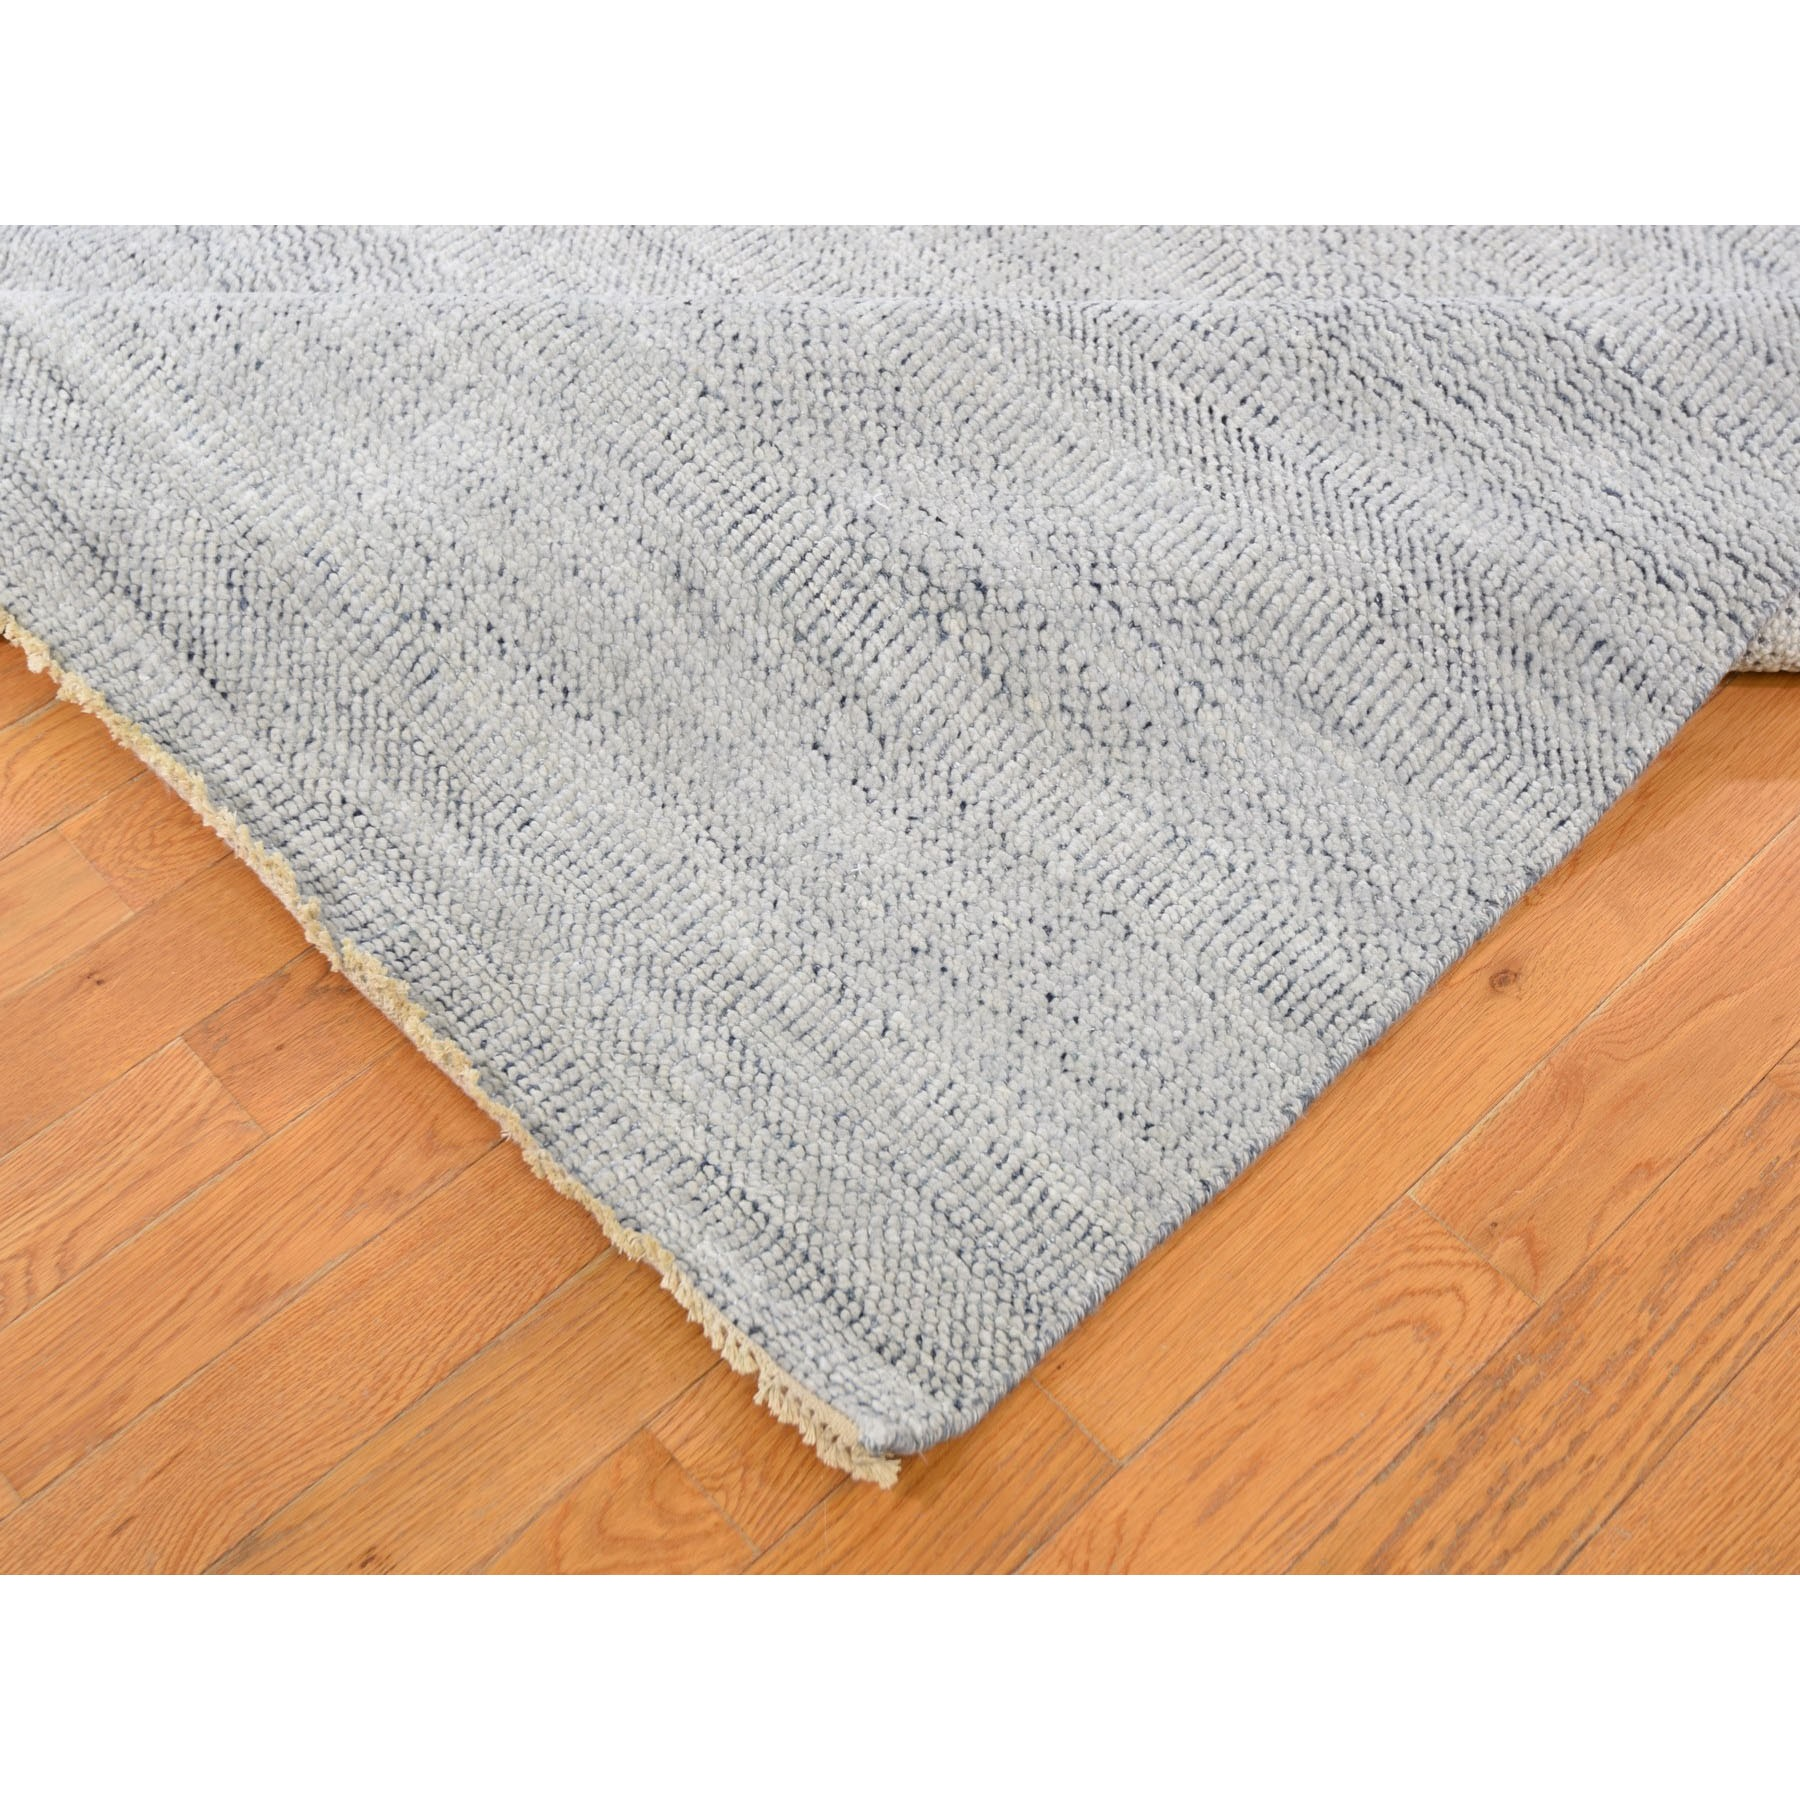 10-3 x14- Gray Grass Design Thick And Plush Wool And Silk Hand Knotted Oriental Rug